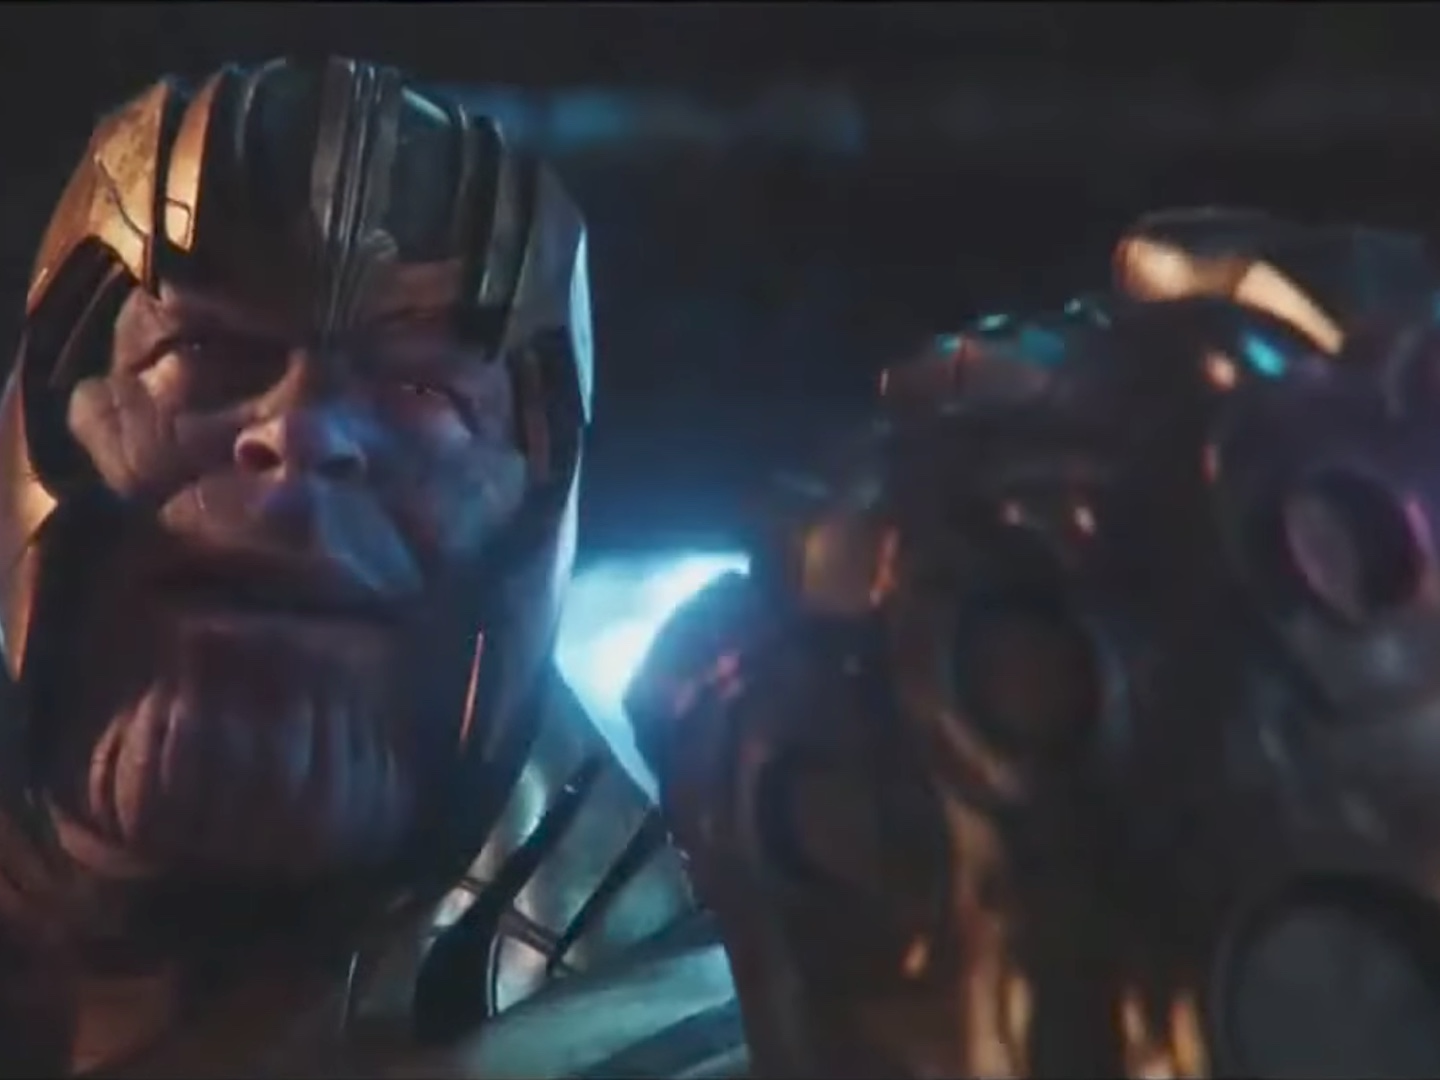 One Marvelous Scene: Enter Thanos